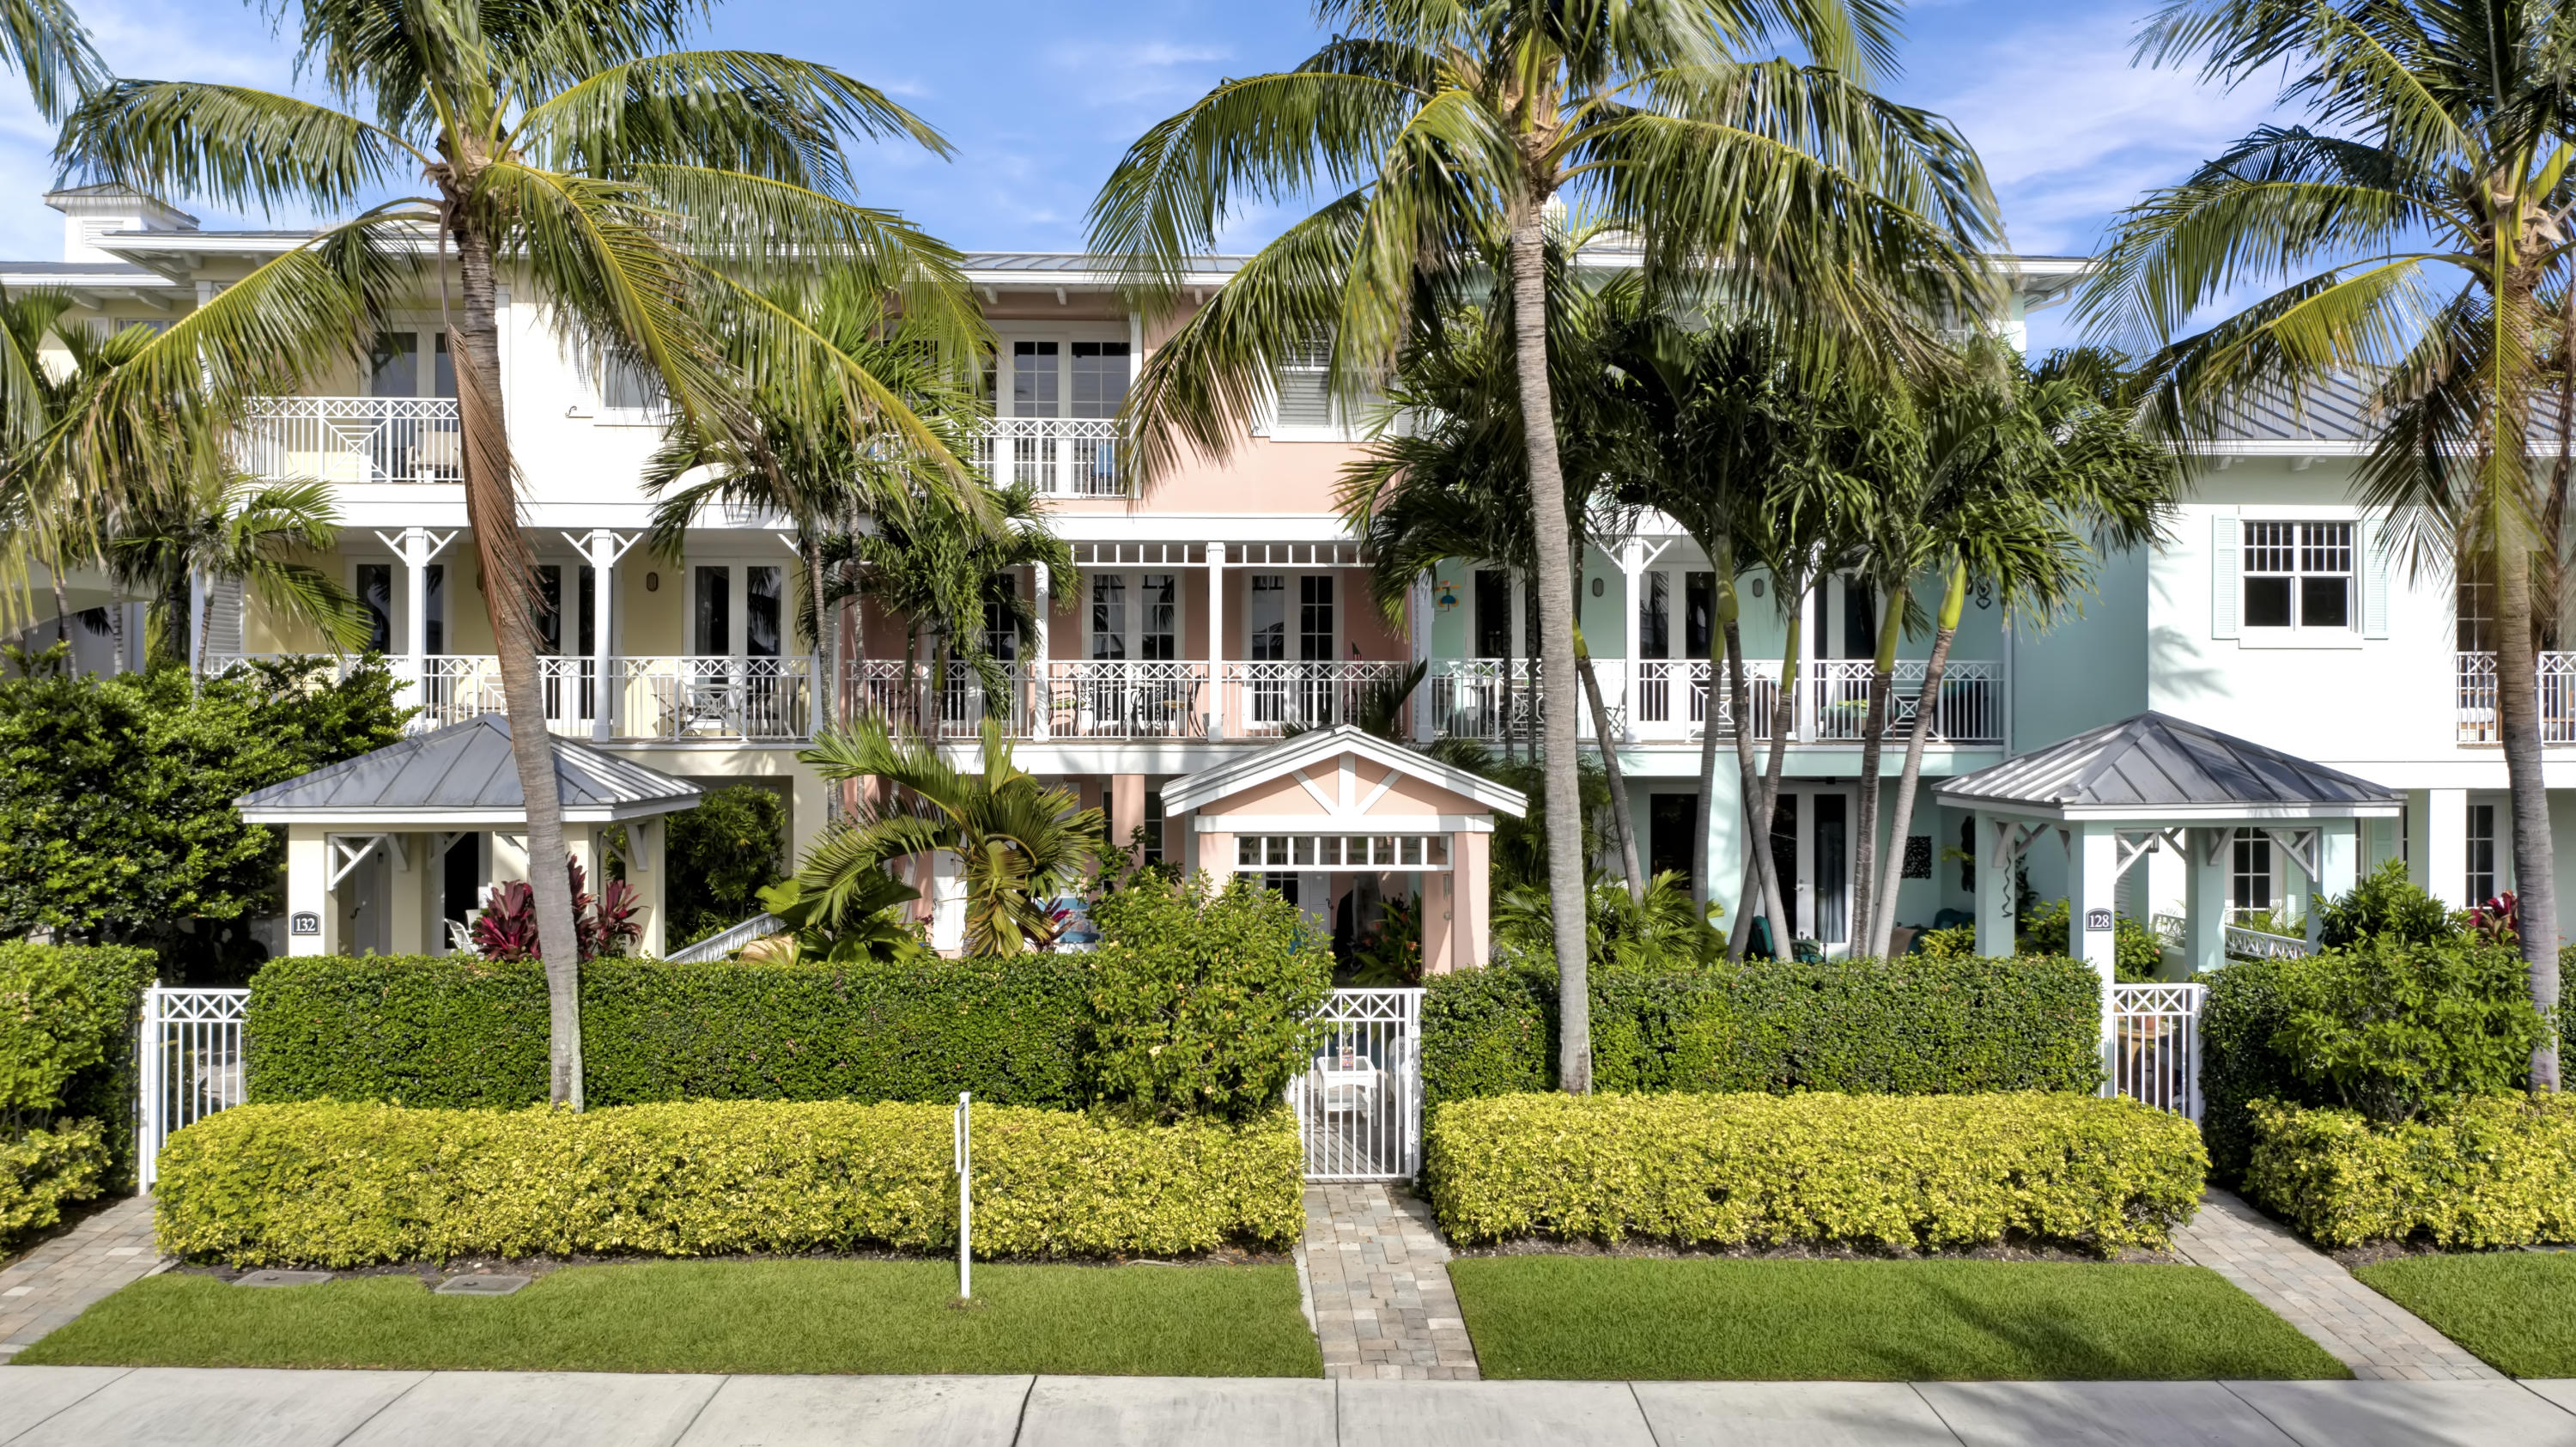 Home for sale in Marina Bay Delray Beach Florida